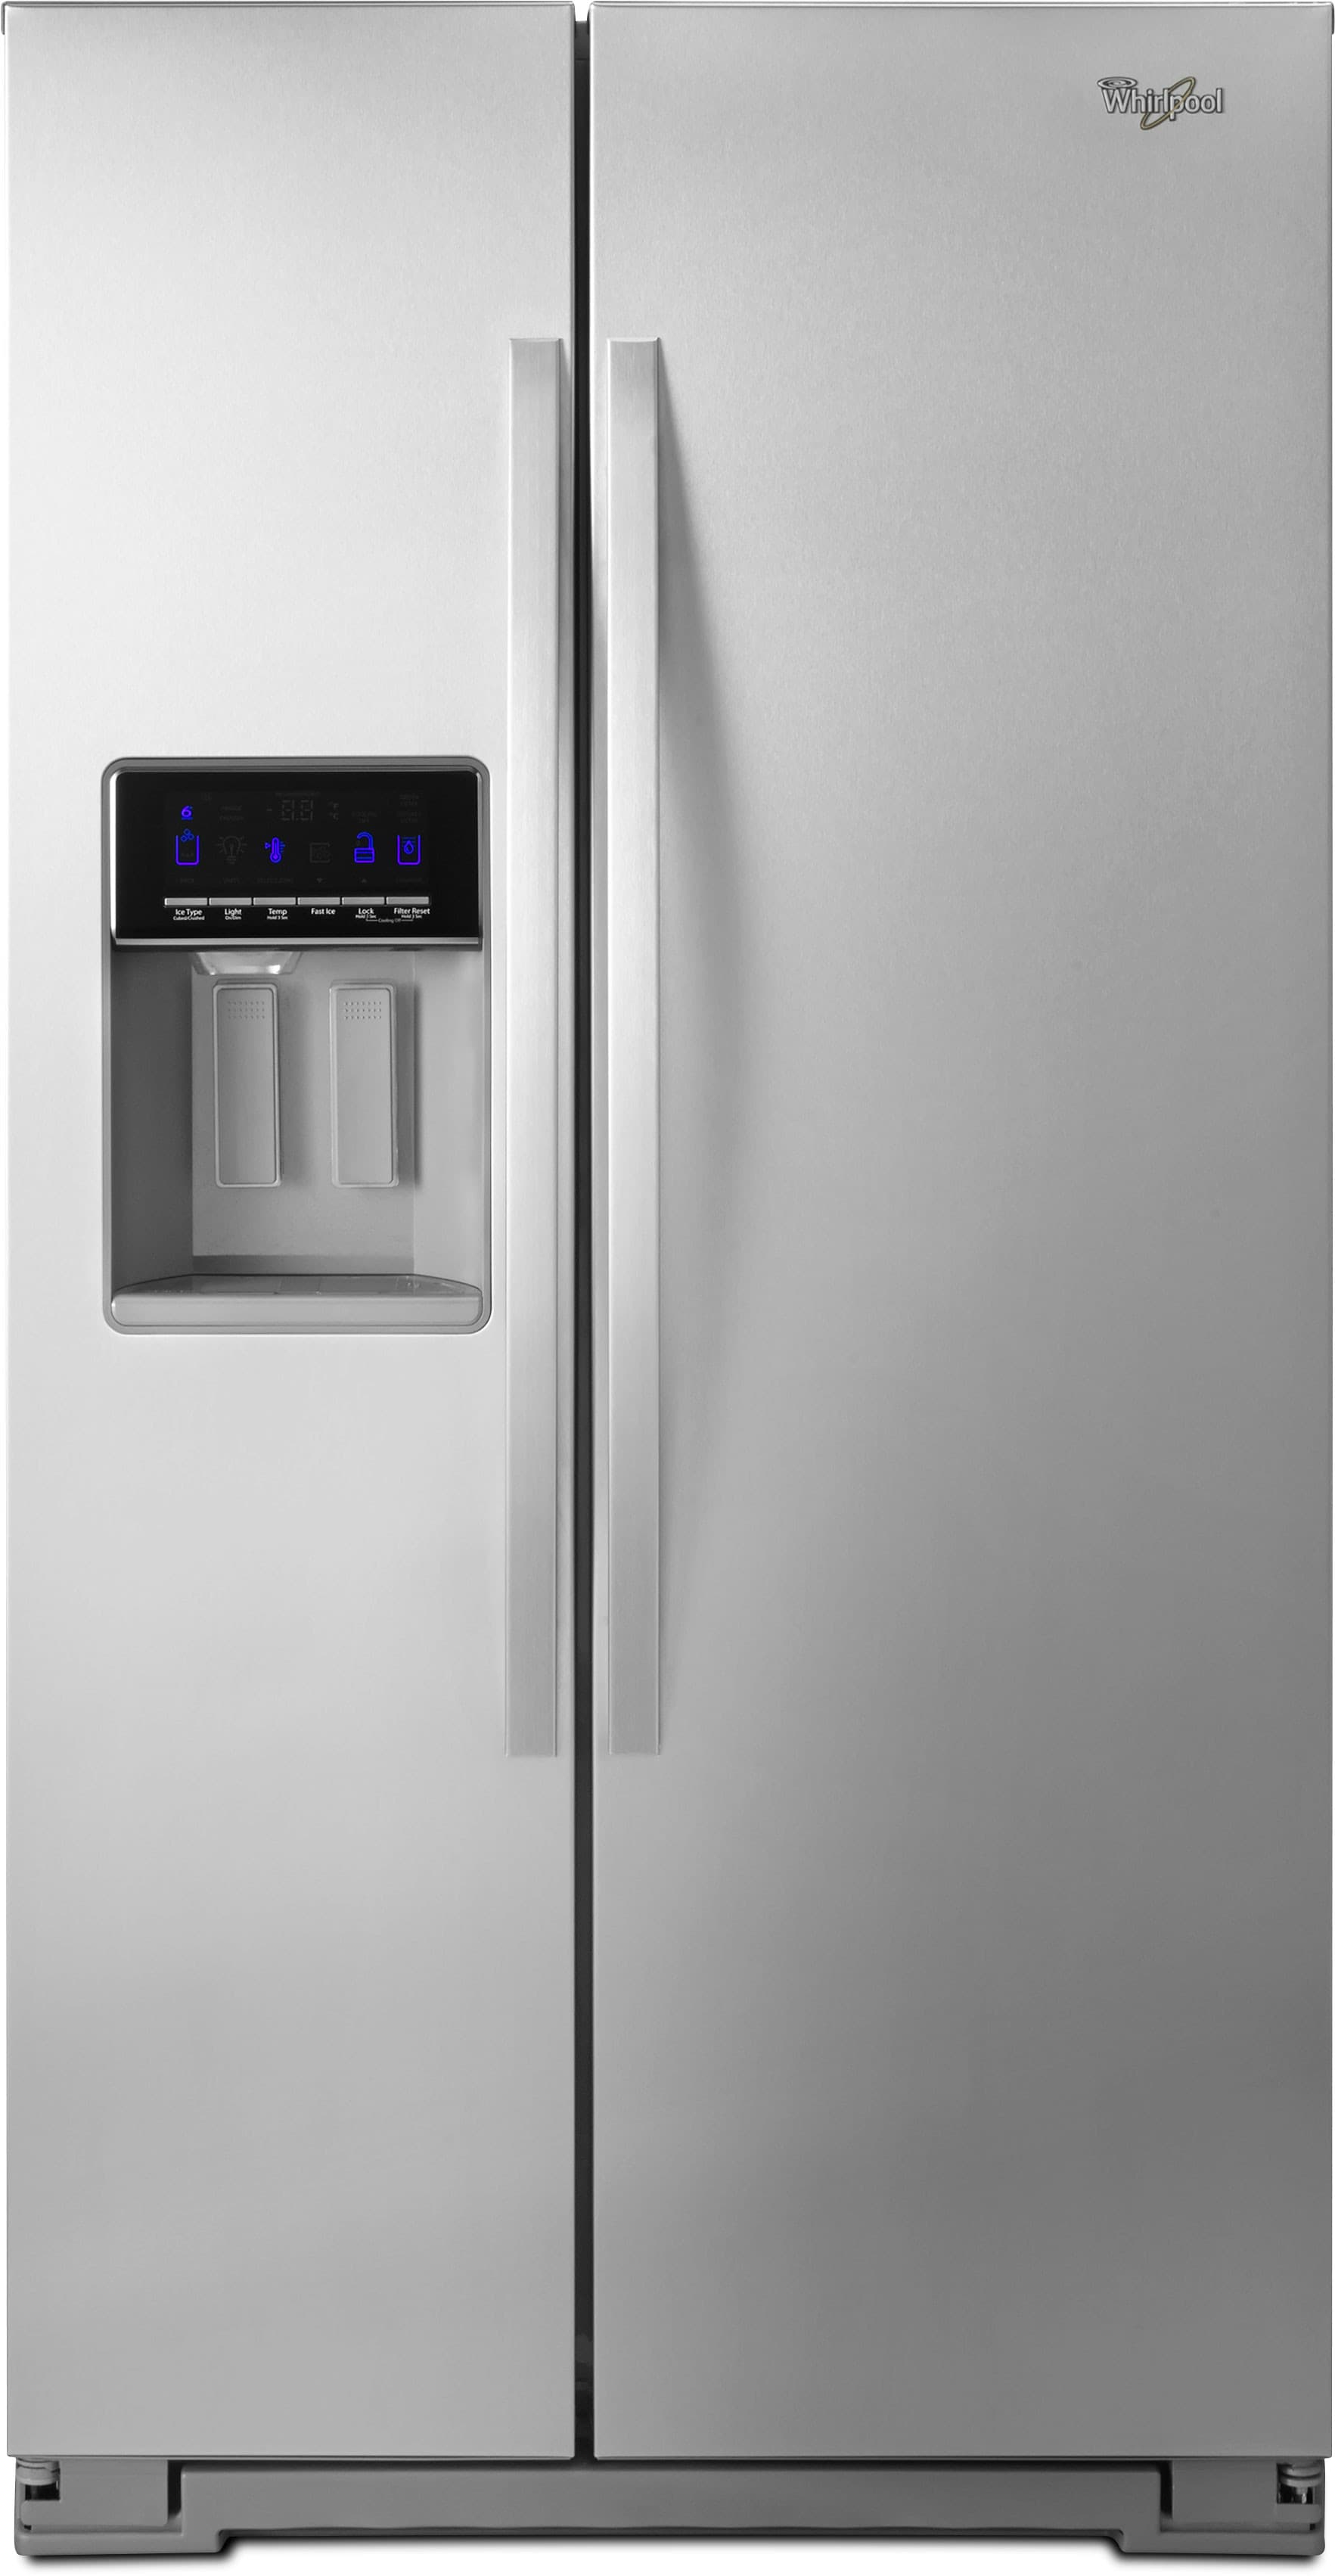 whirlpool side by side refrigerator white. whirlpool wrs576fidm 36 inch side-by-side refrigerator with 25.6 cu. ft. capacity, humidity controlled drawer, accuchill temperature management, side by white .